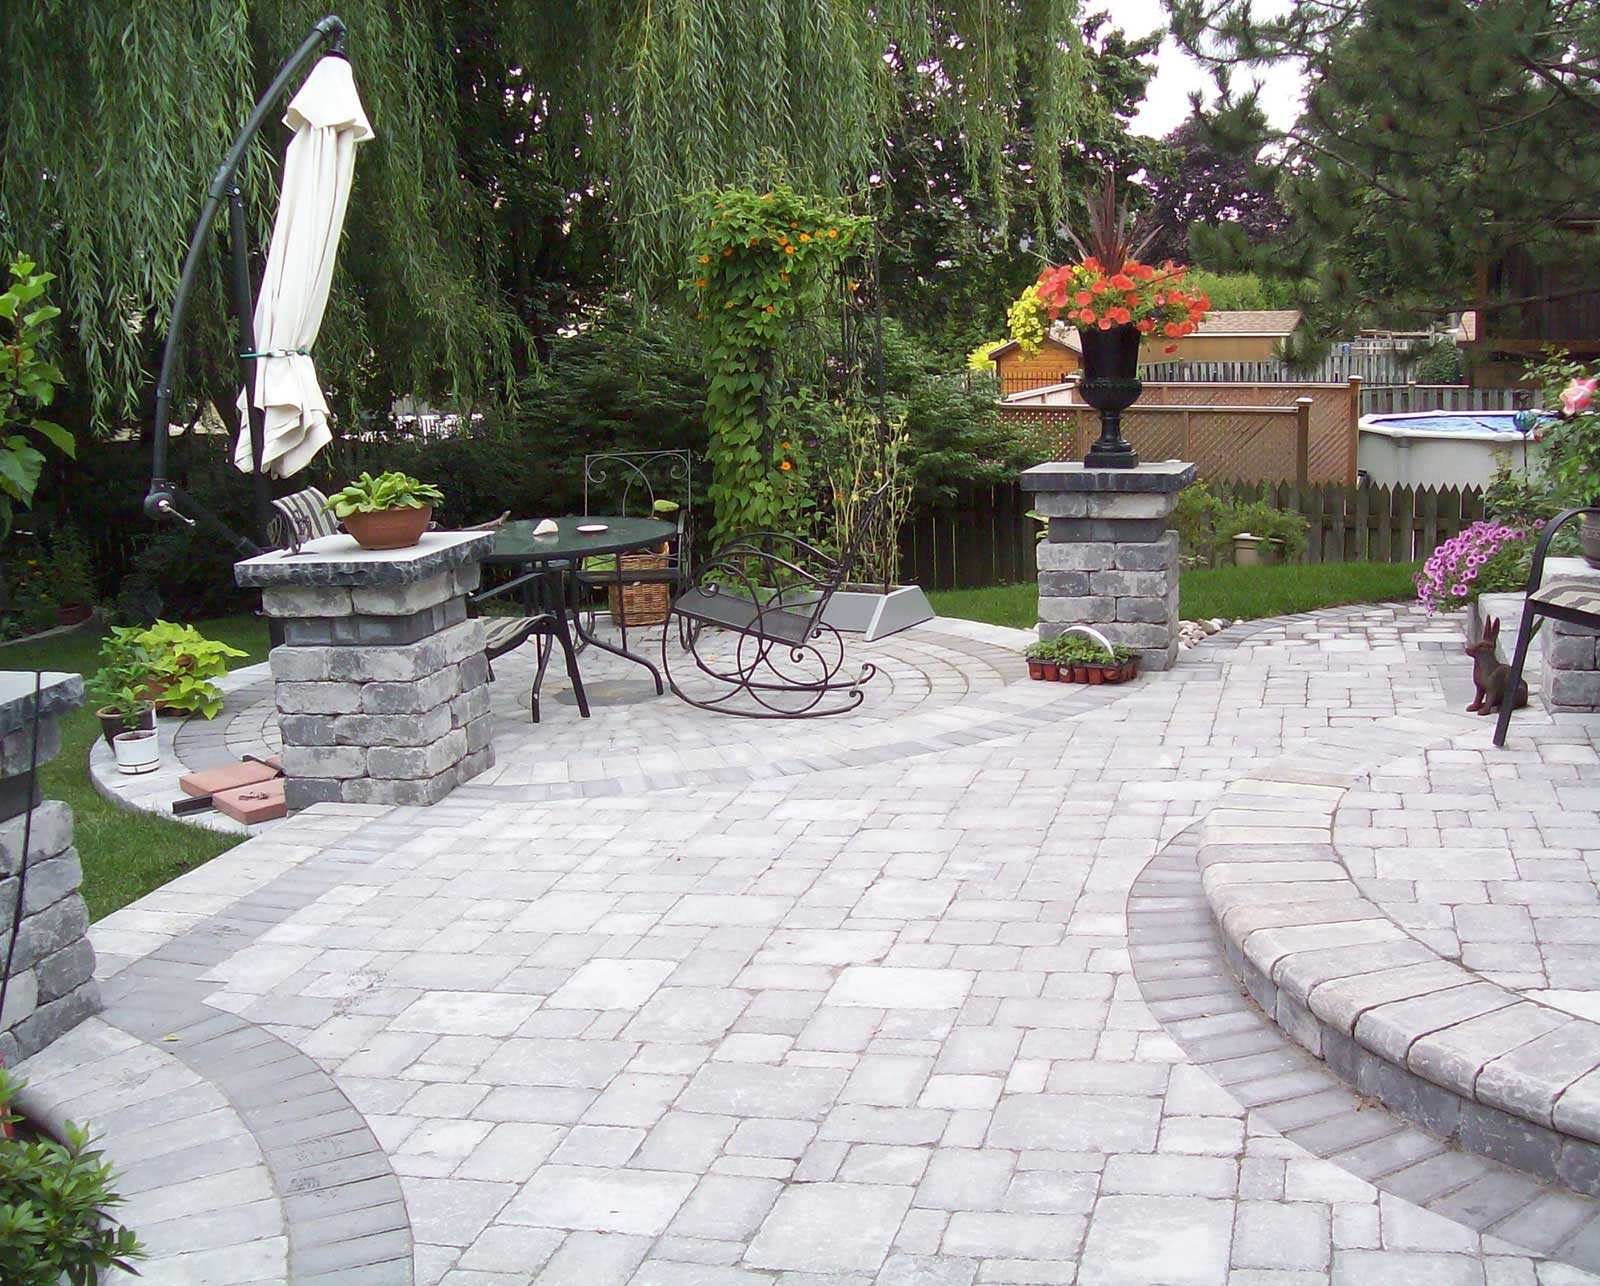 Backyard Landscape Design Built For Limitless Enjoyment Landscaping for 12 Some of the Coolest Ways How to Craft Backyard Landscaping Ideas With Pavers